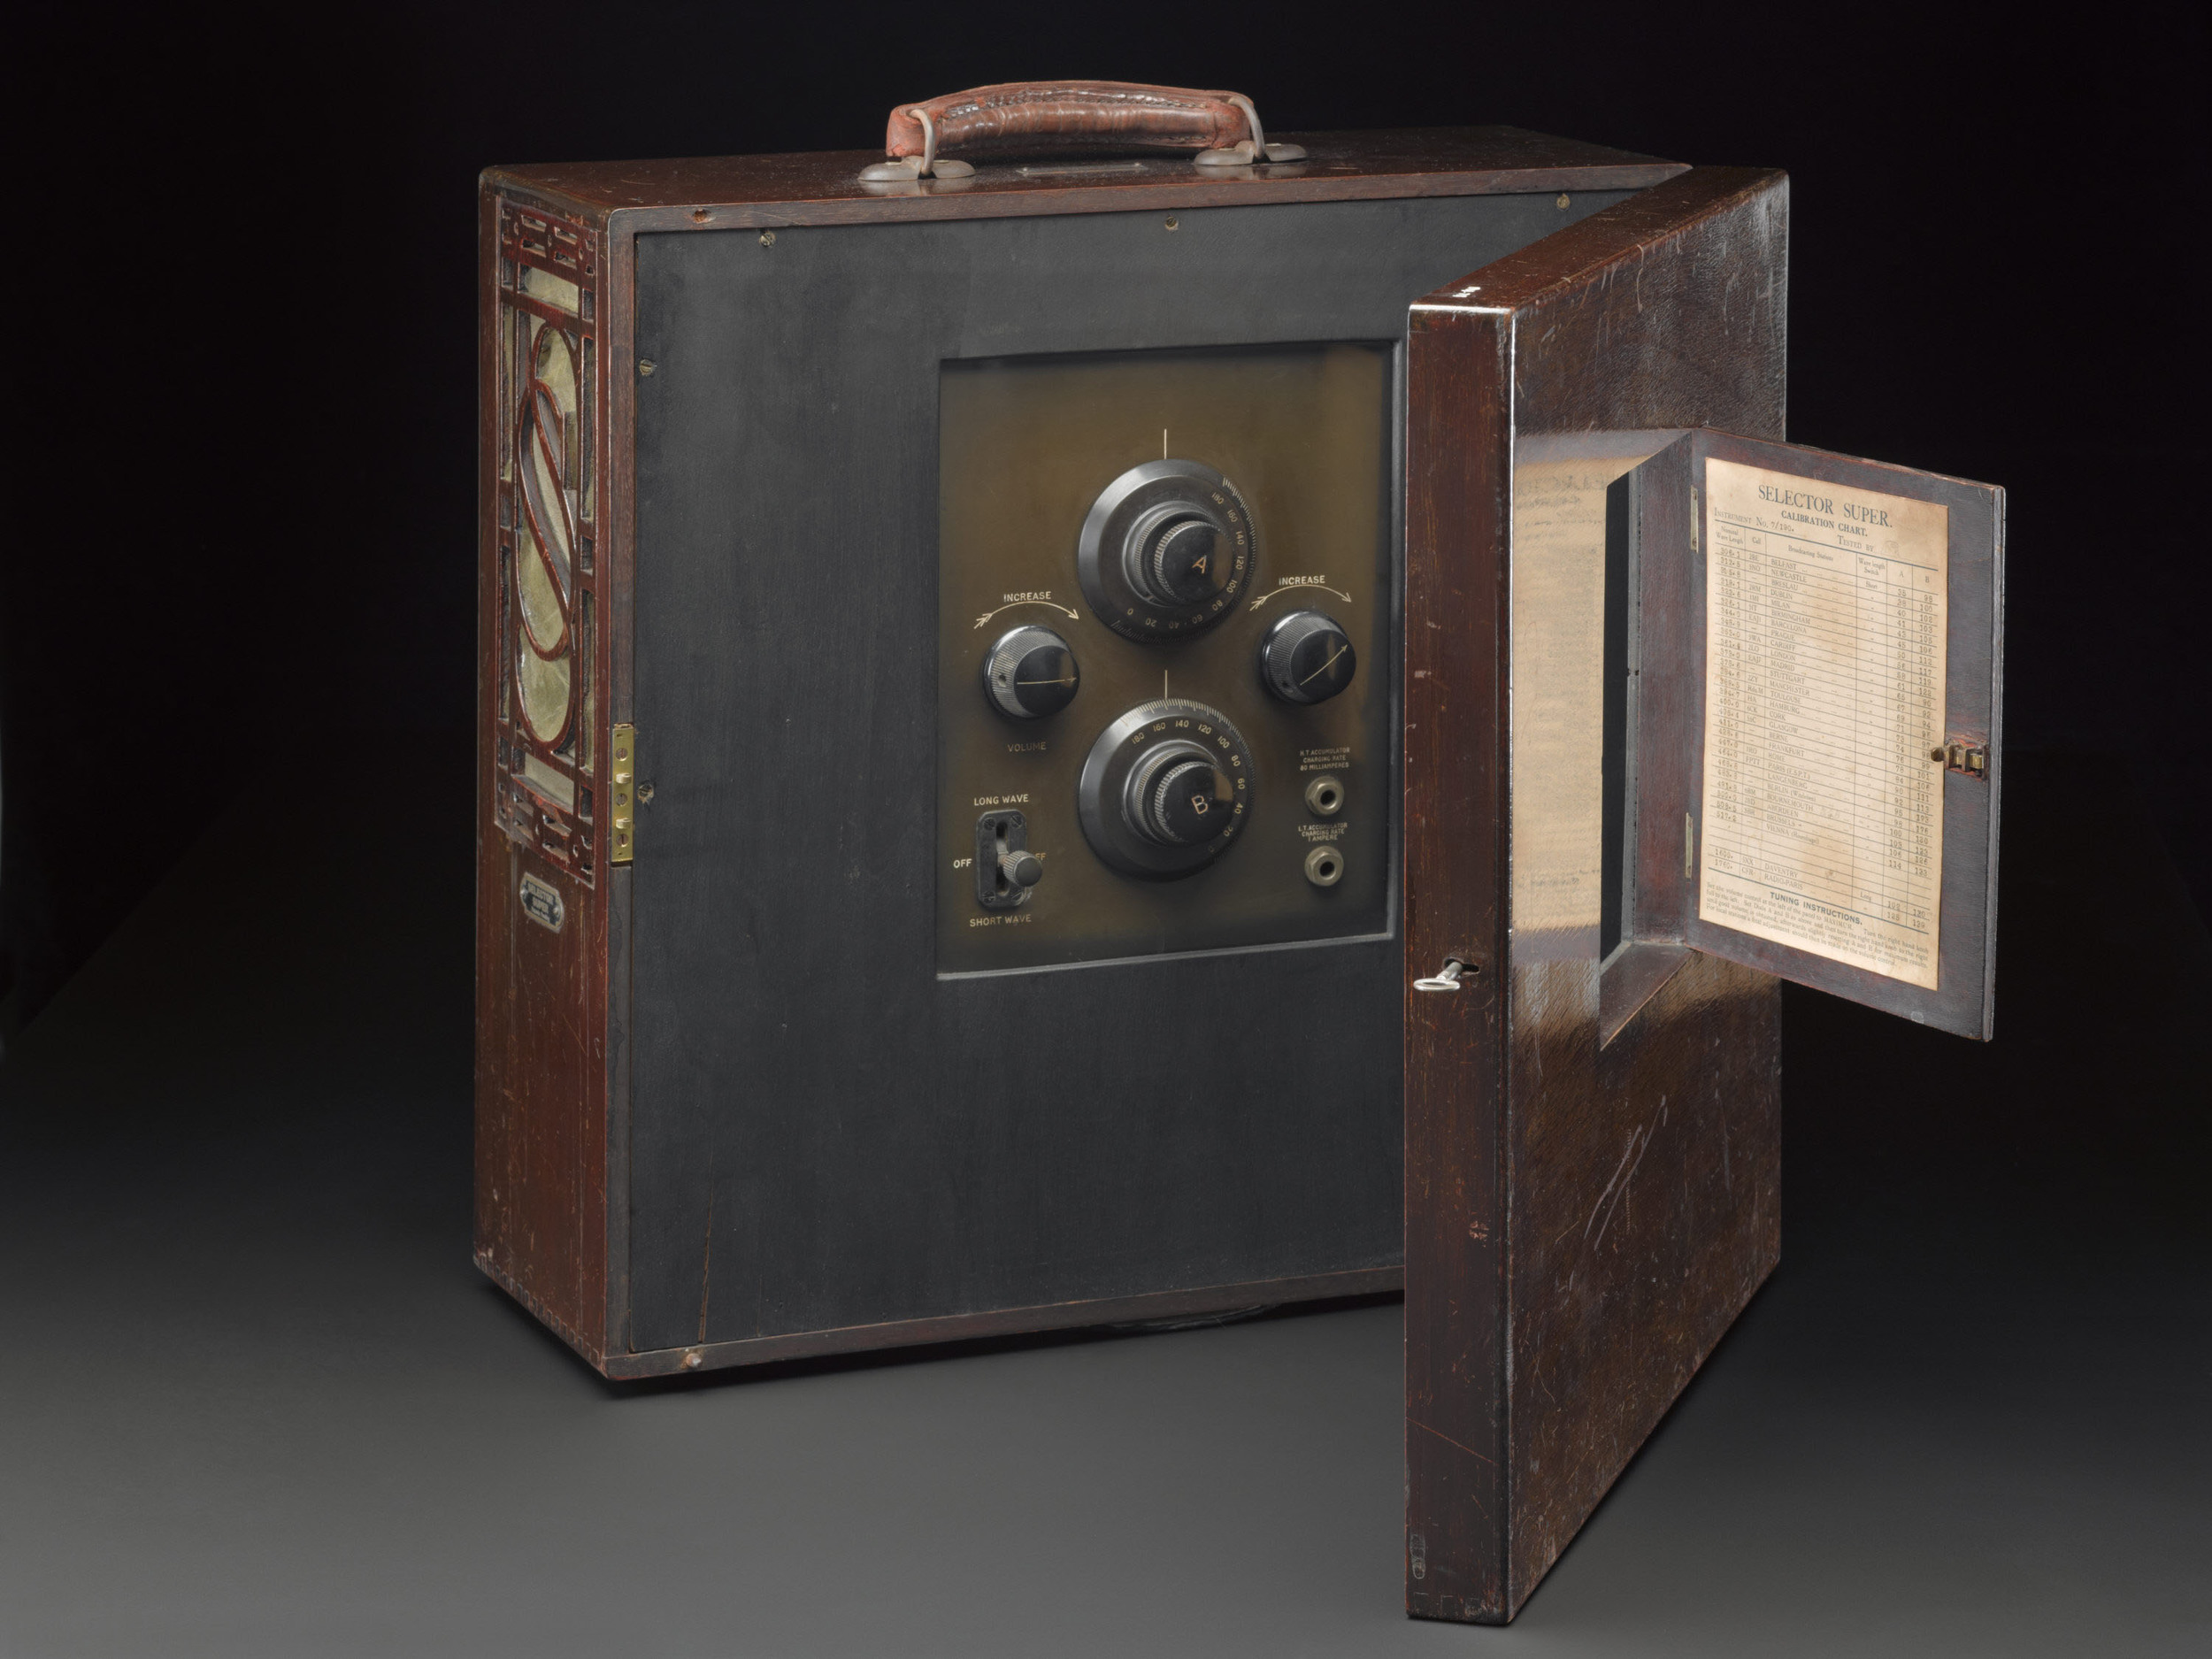 The radio is now fully conserved and radio for display in Information Age when it opens this autumn. (Source: Science Museum / SSPL)